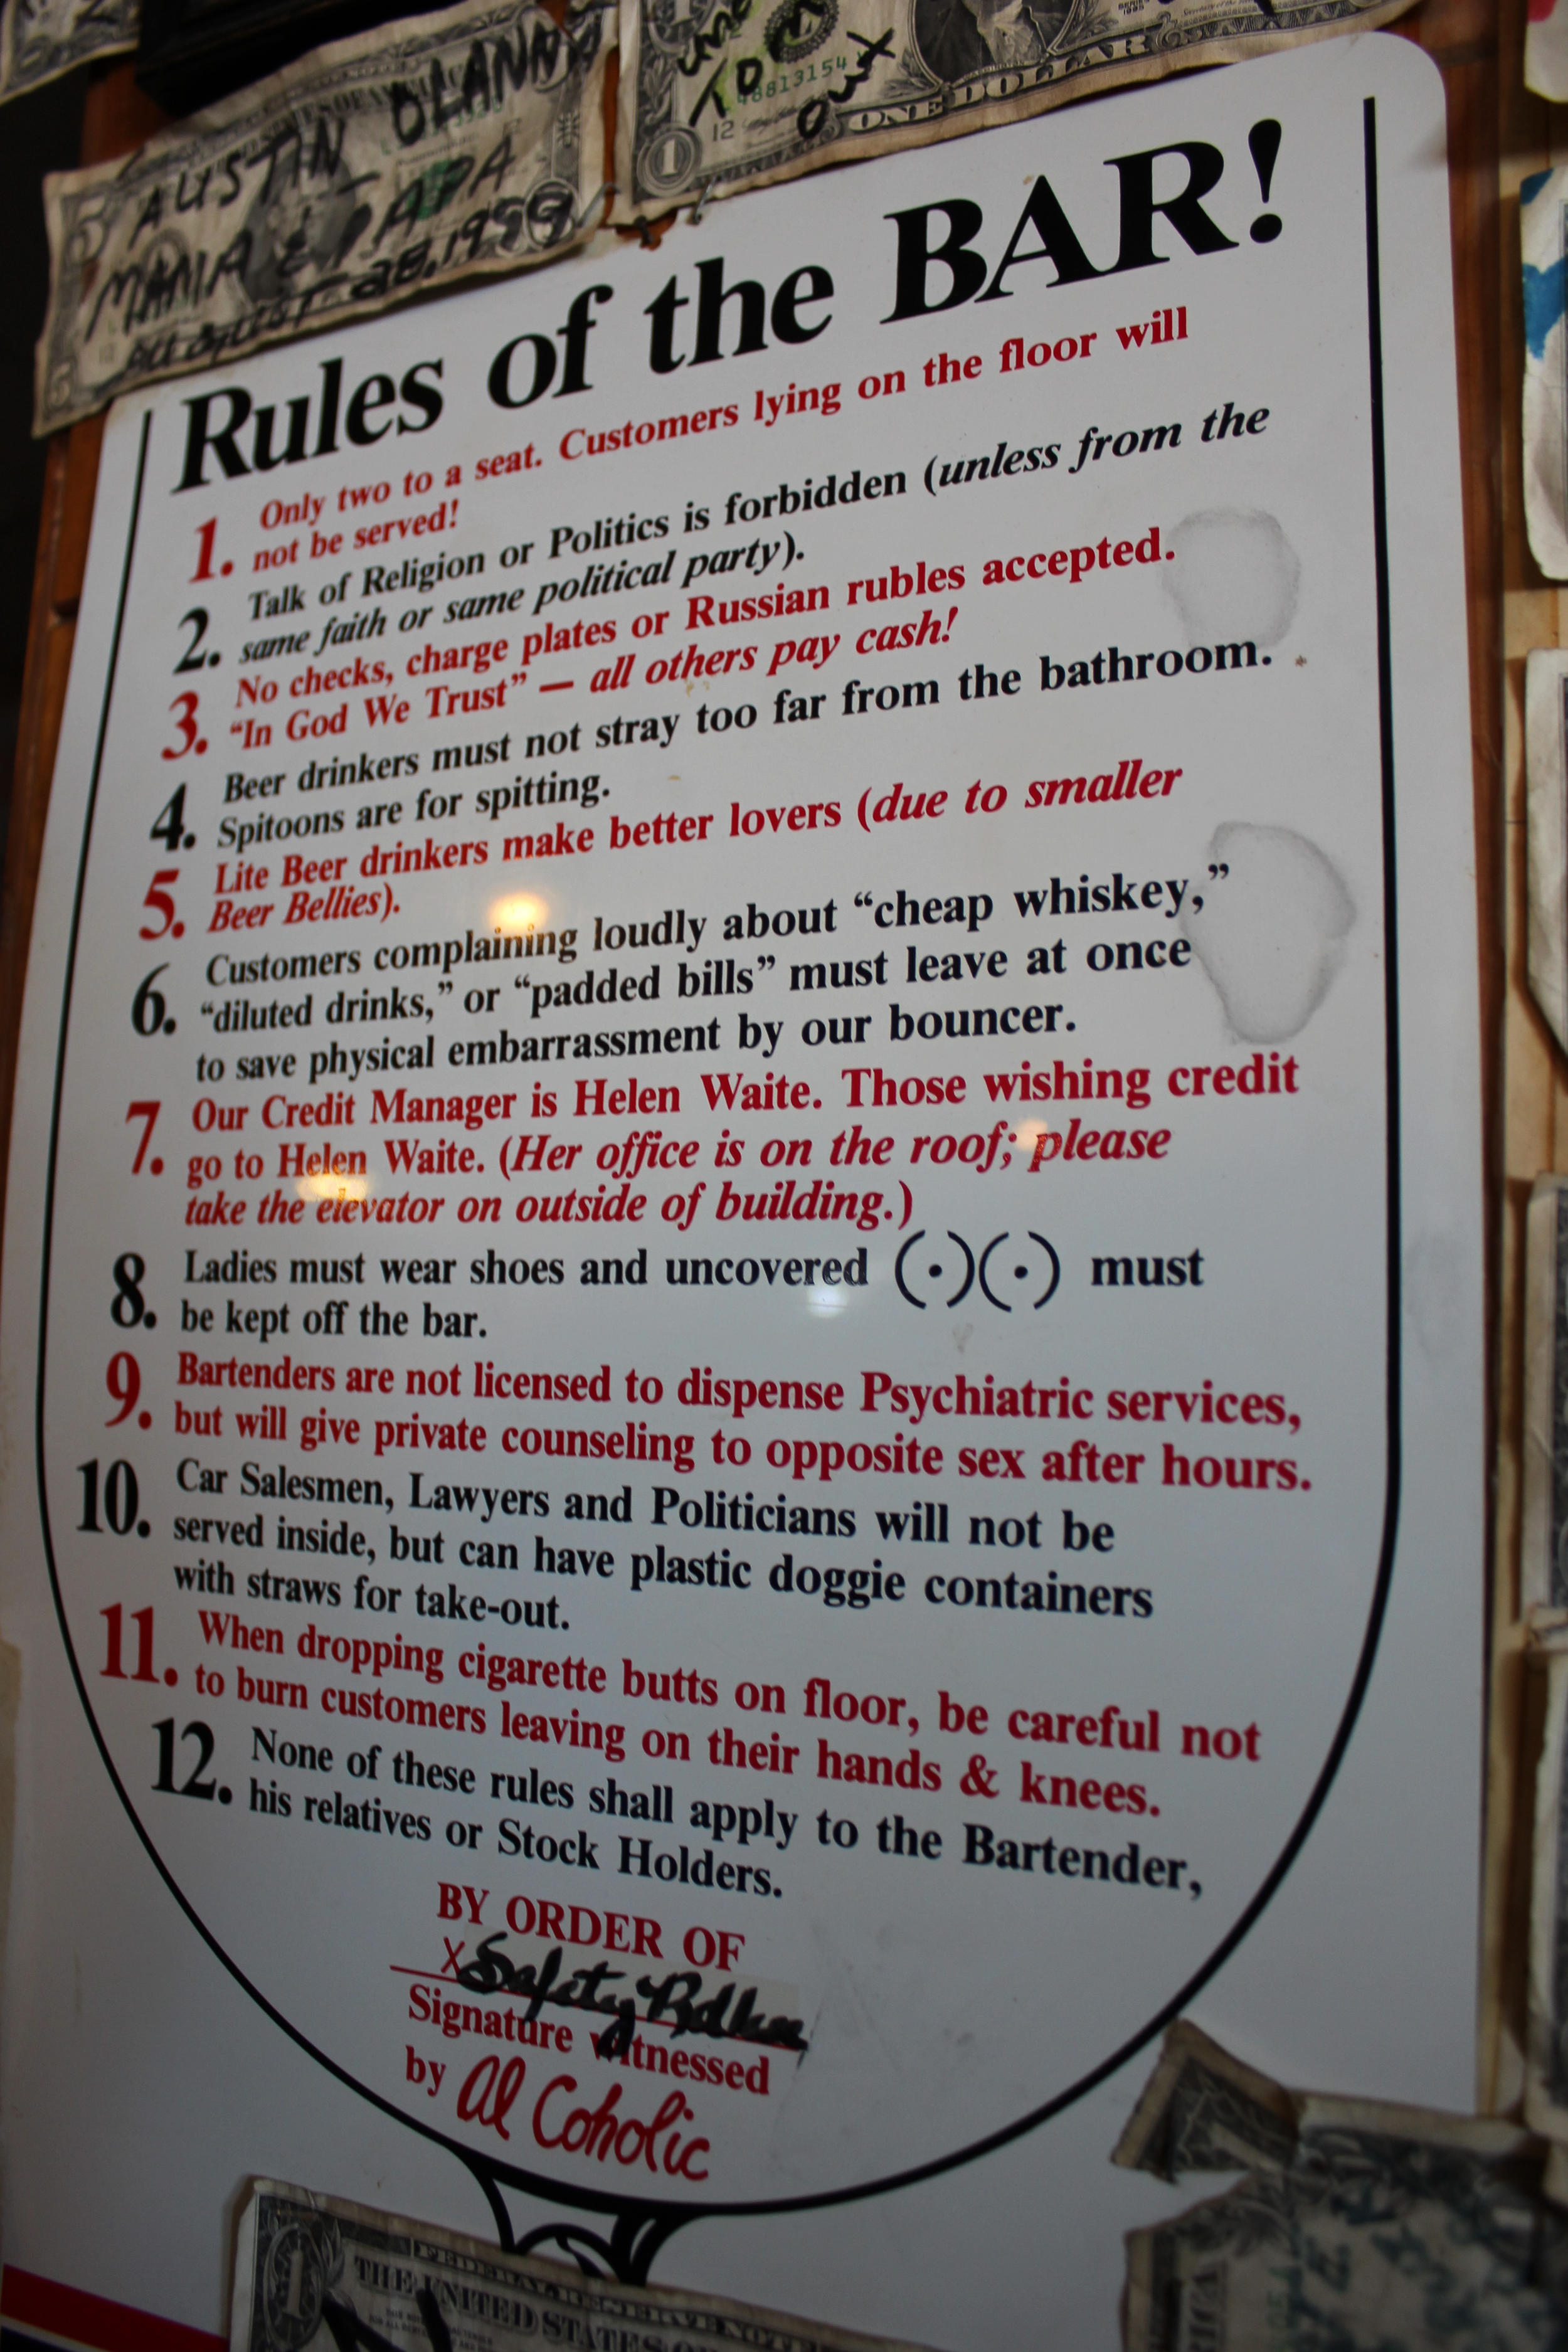 Important guidelines for patrons.